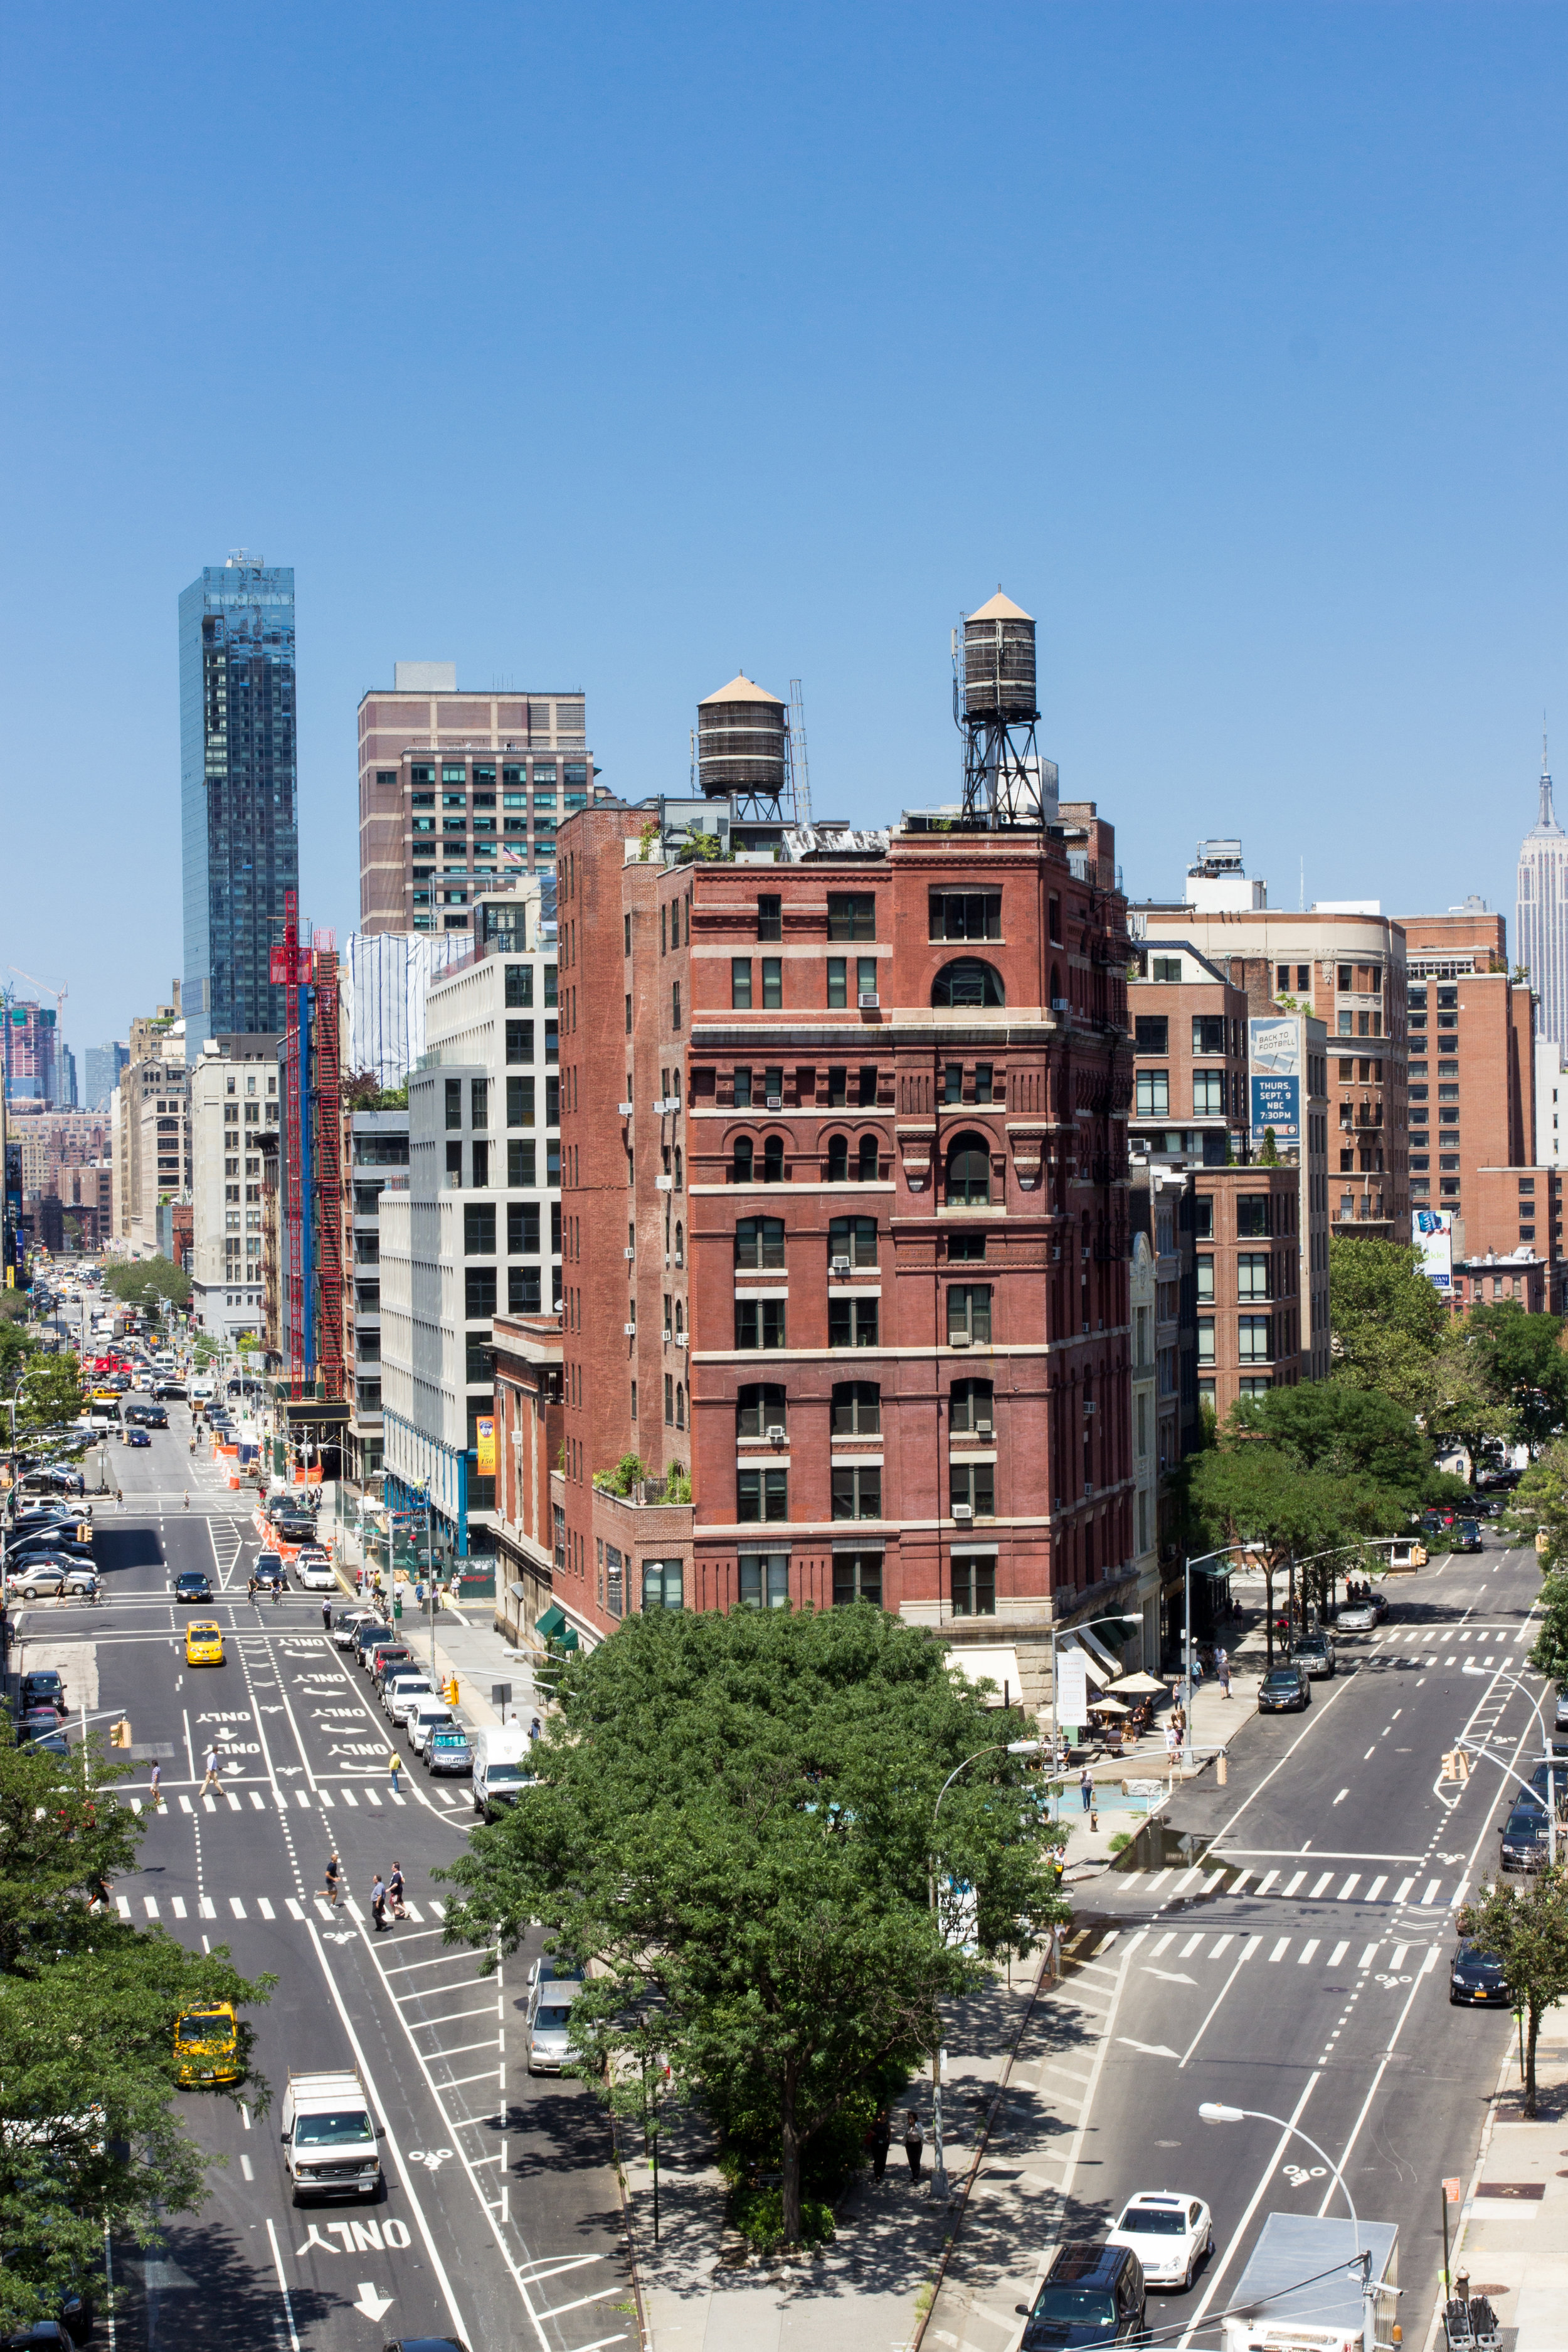 173 west broadway_tra studio architecture_nyc_Construction-14.jpg